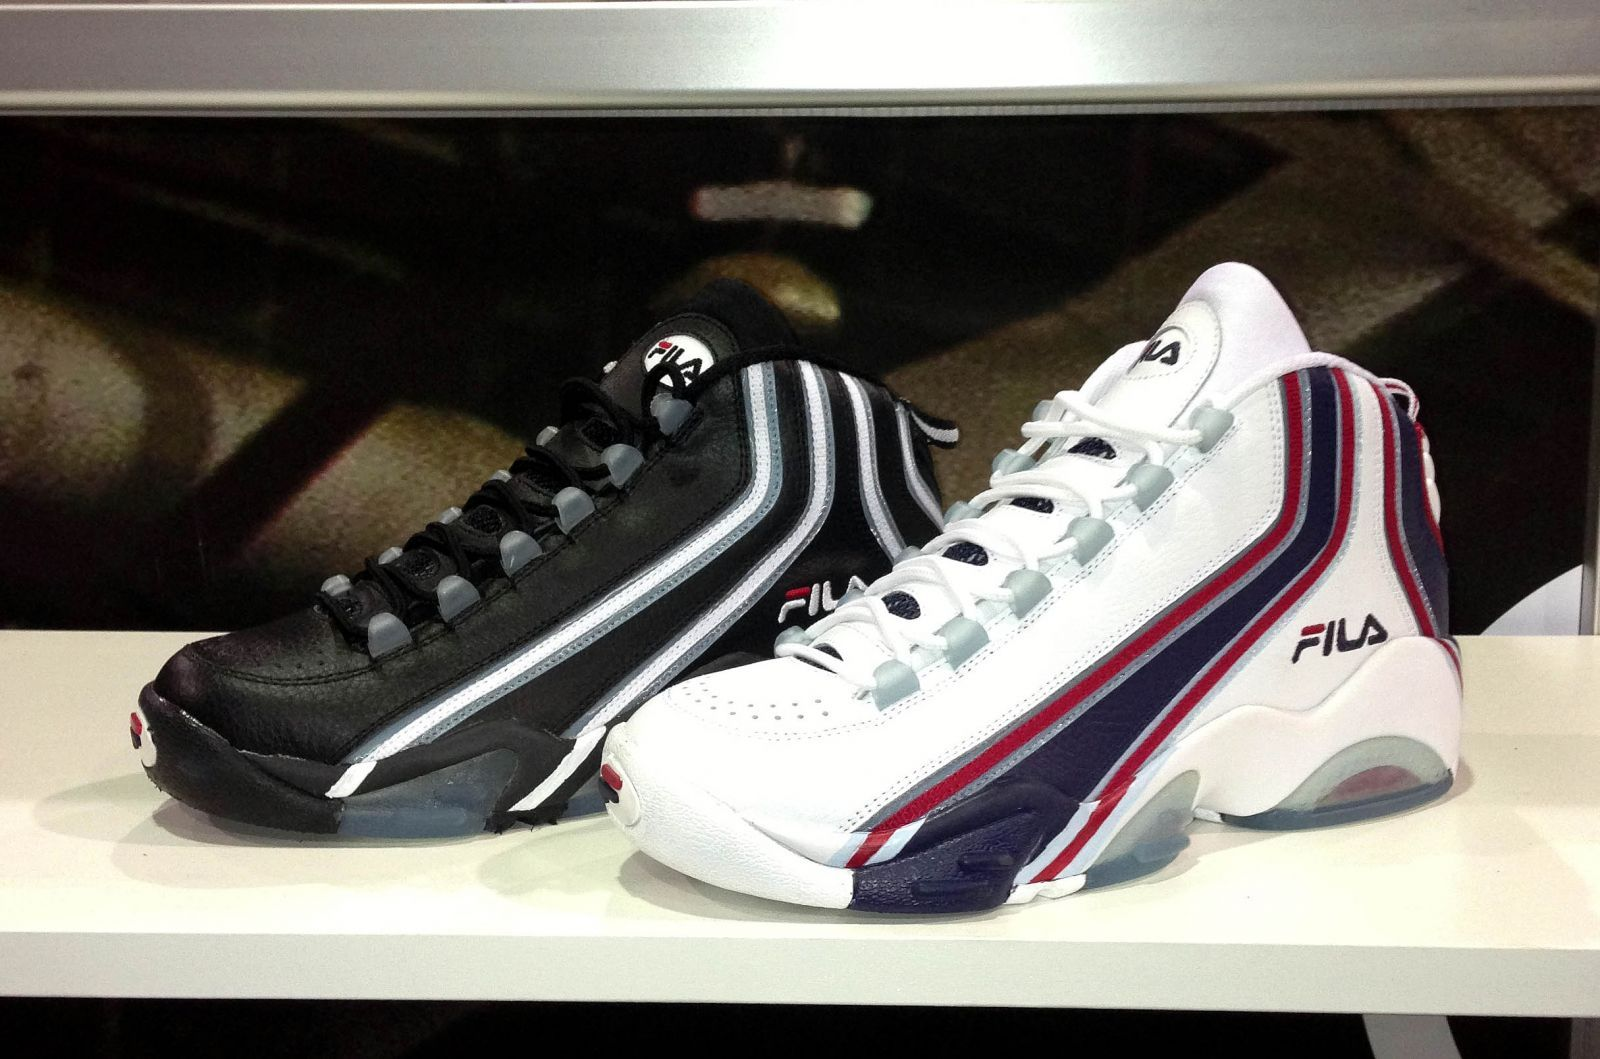 fila shoes 10 \/500 hydrocodone addiction potential